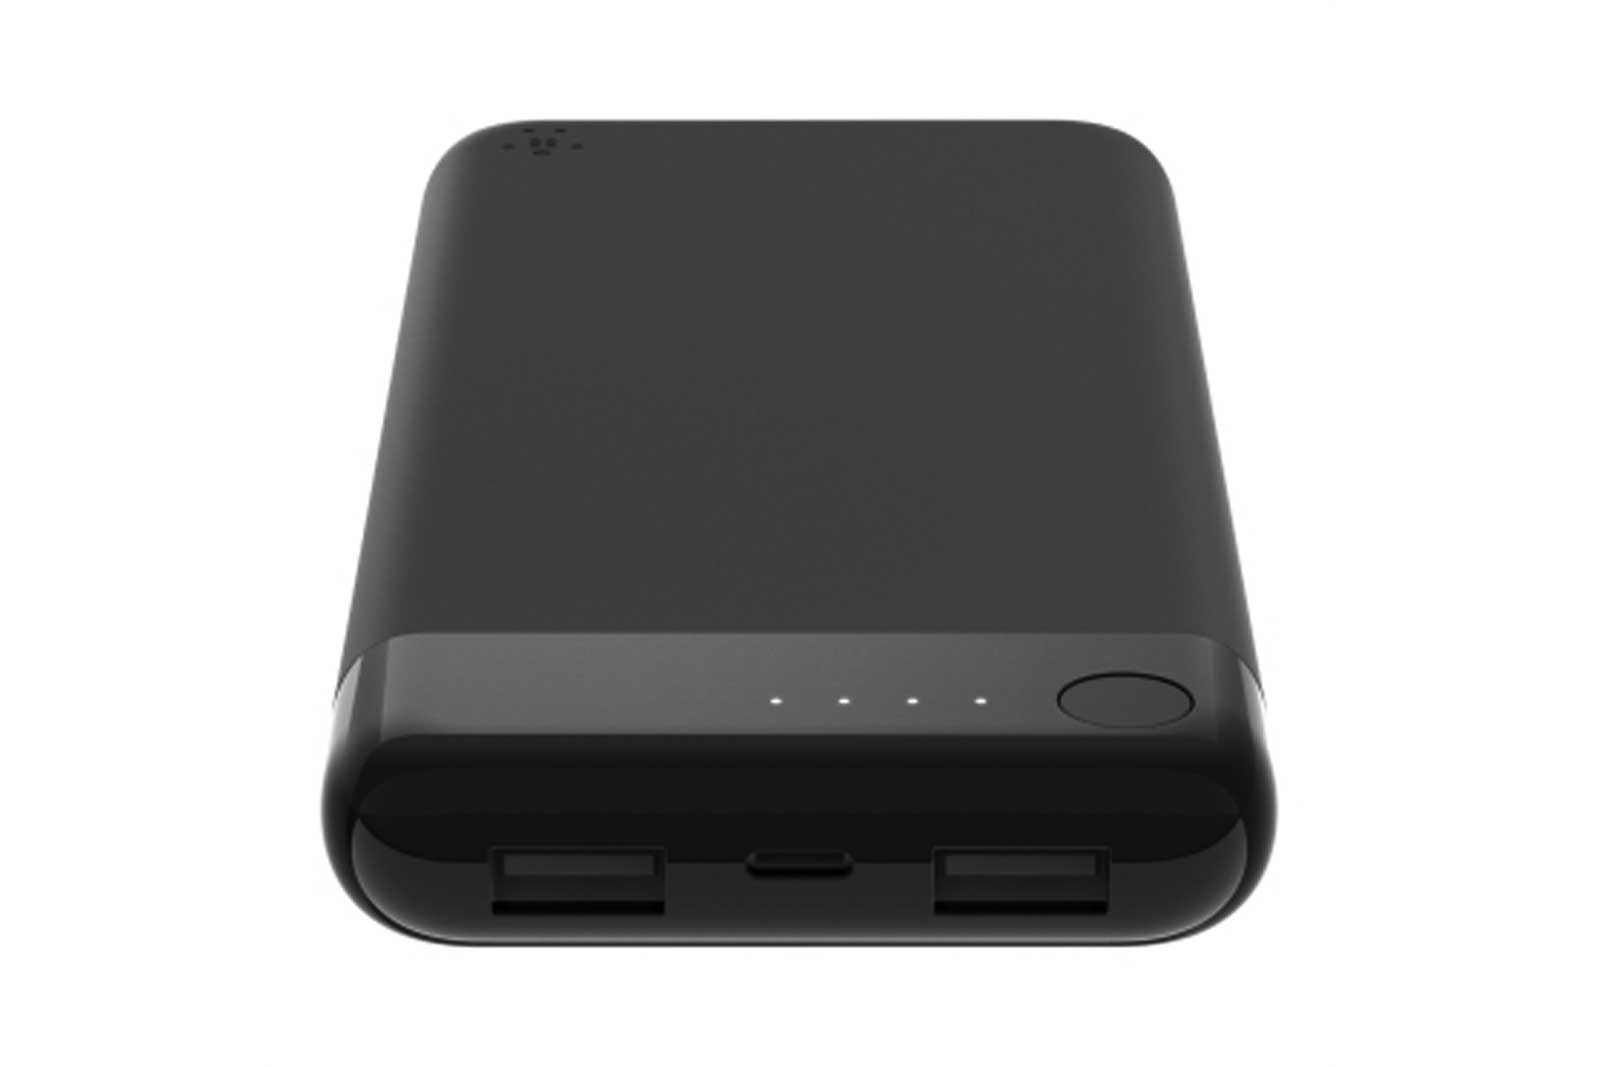 Belkin launches 10,000 mAh power bank with Lightning input